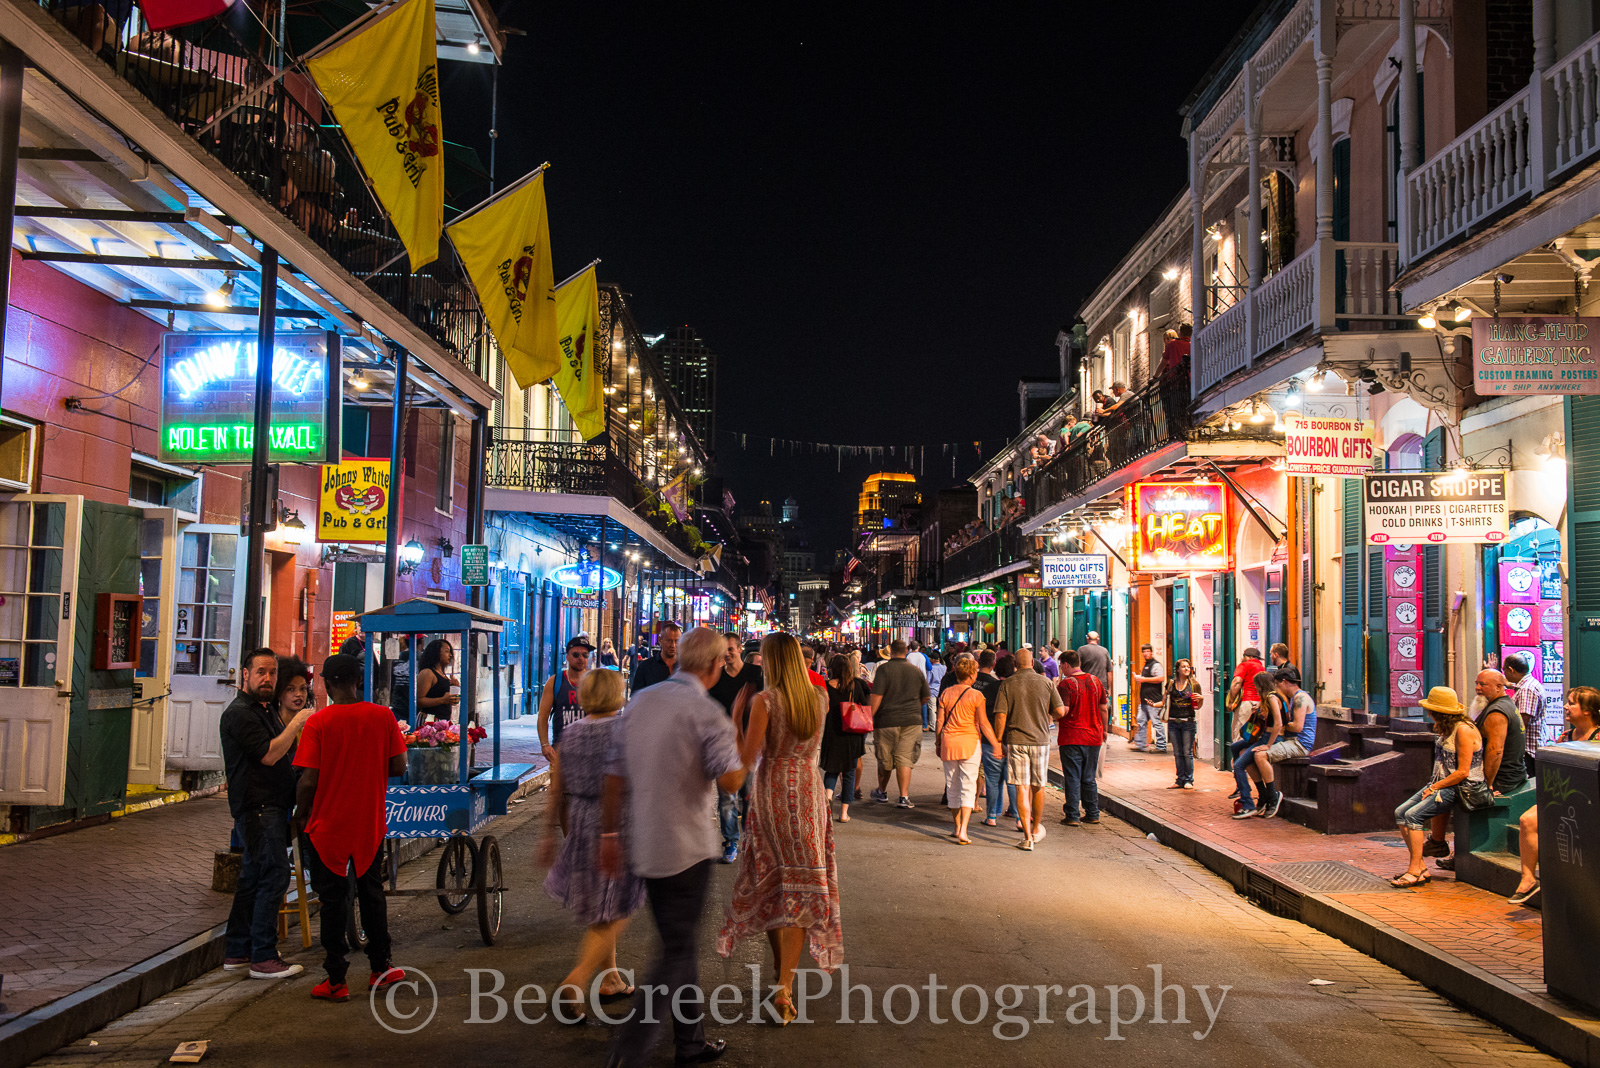 Bourbon Street, French Quarter, New Orleans, bars, city, lifestyle, night, night life, people, street scene, photo